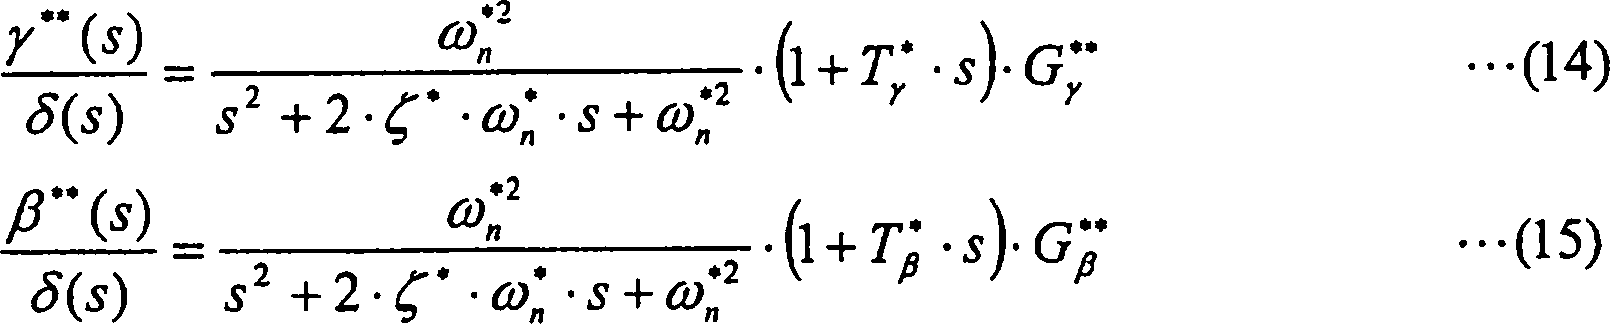 calculation section calculates